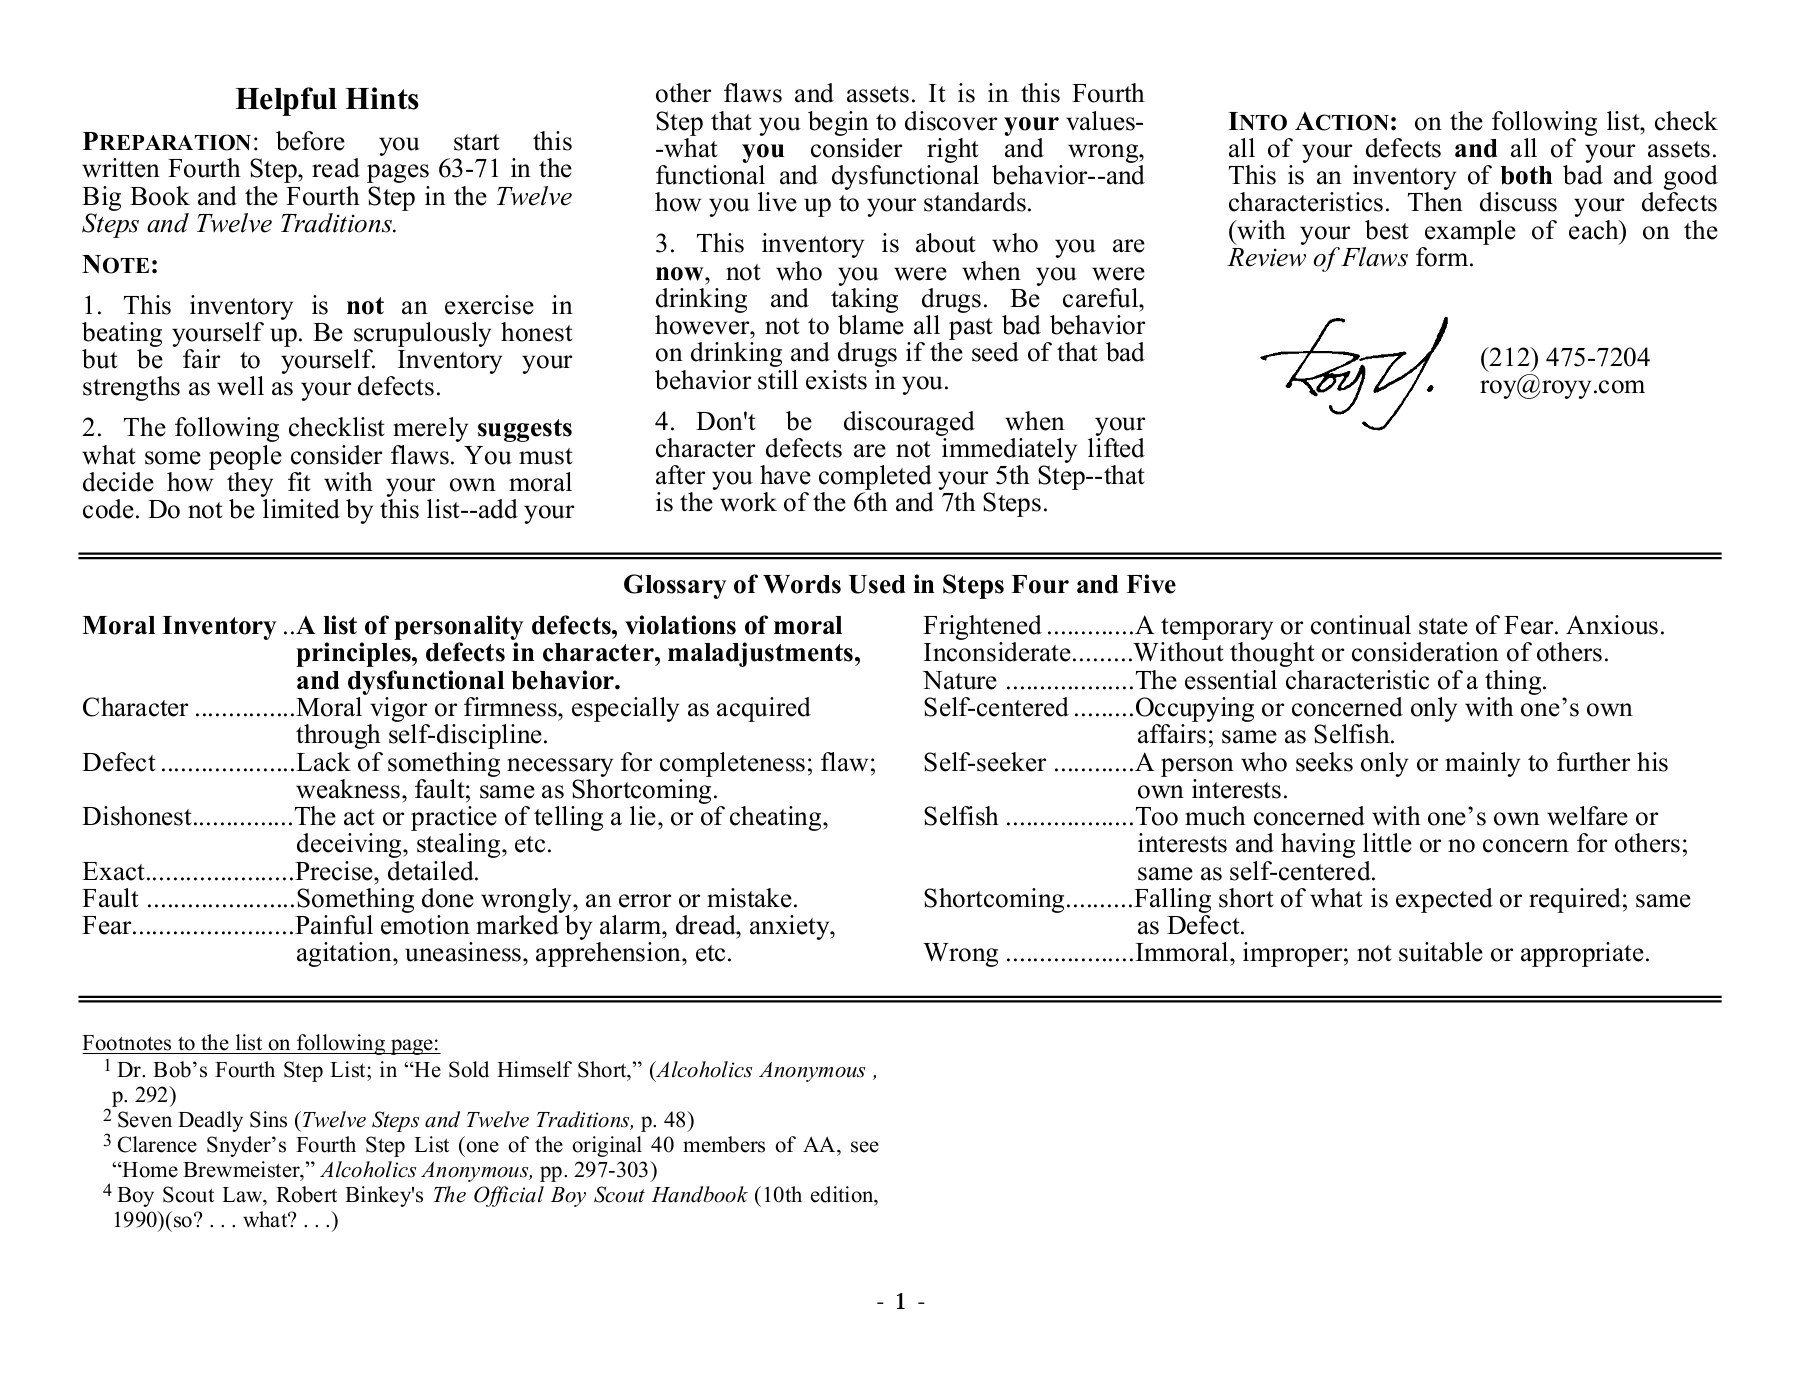 Fourth Step Invento Ry  12  Steps  Recovery Pages 1  15  Text Also Step 7 Aa Worksheet